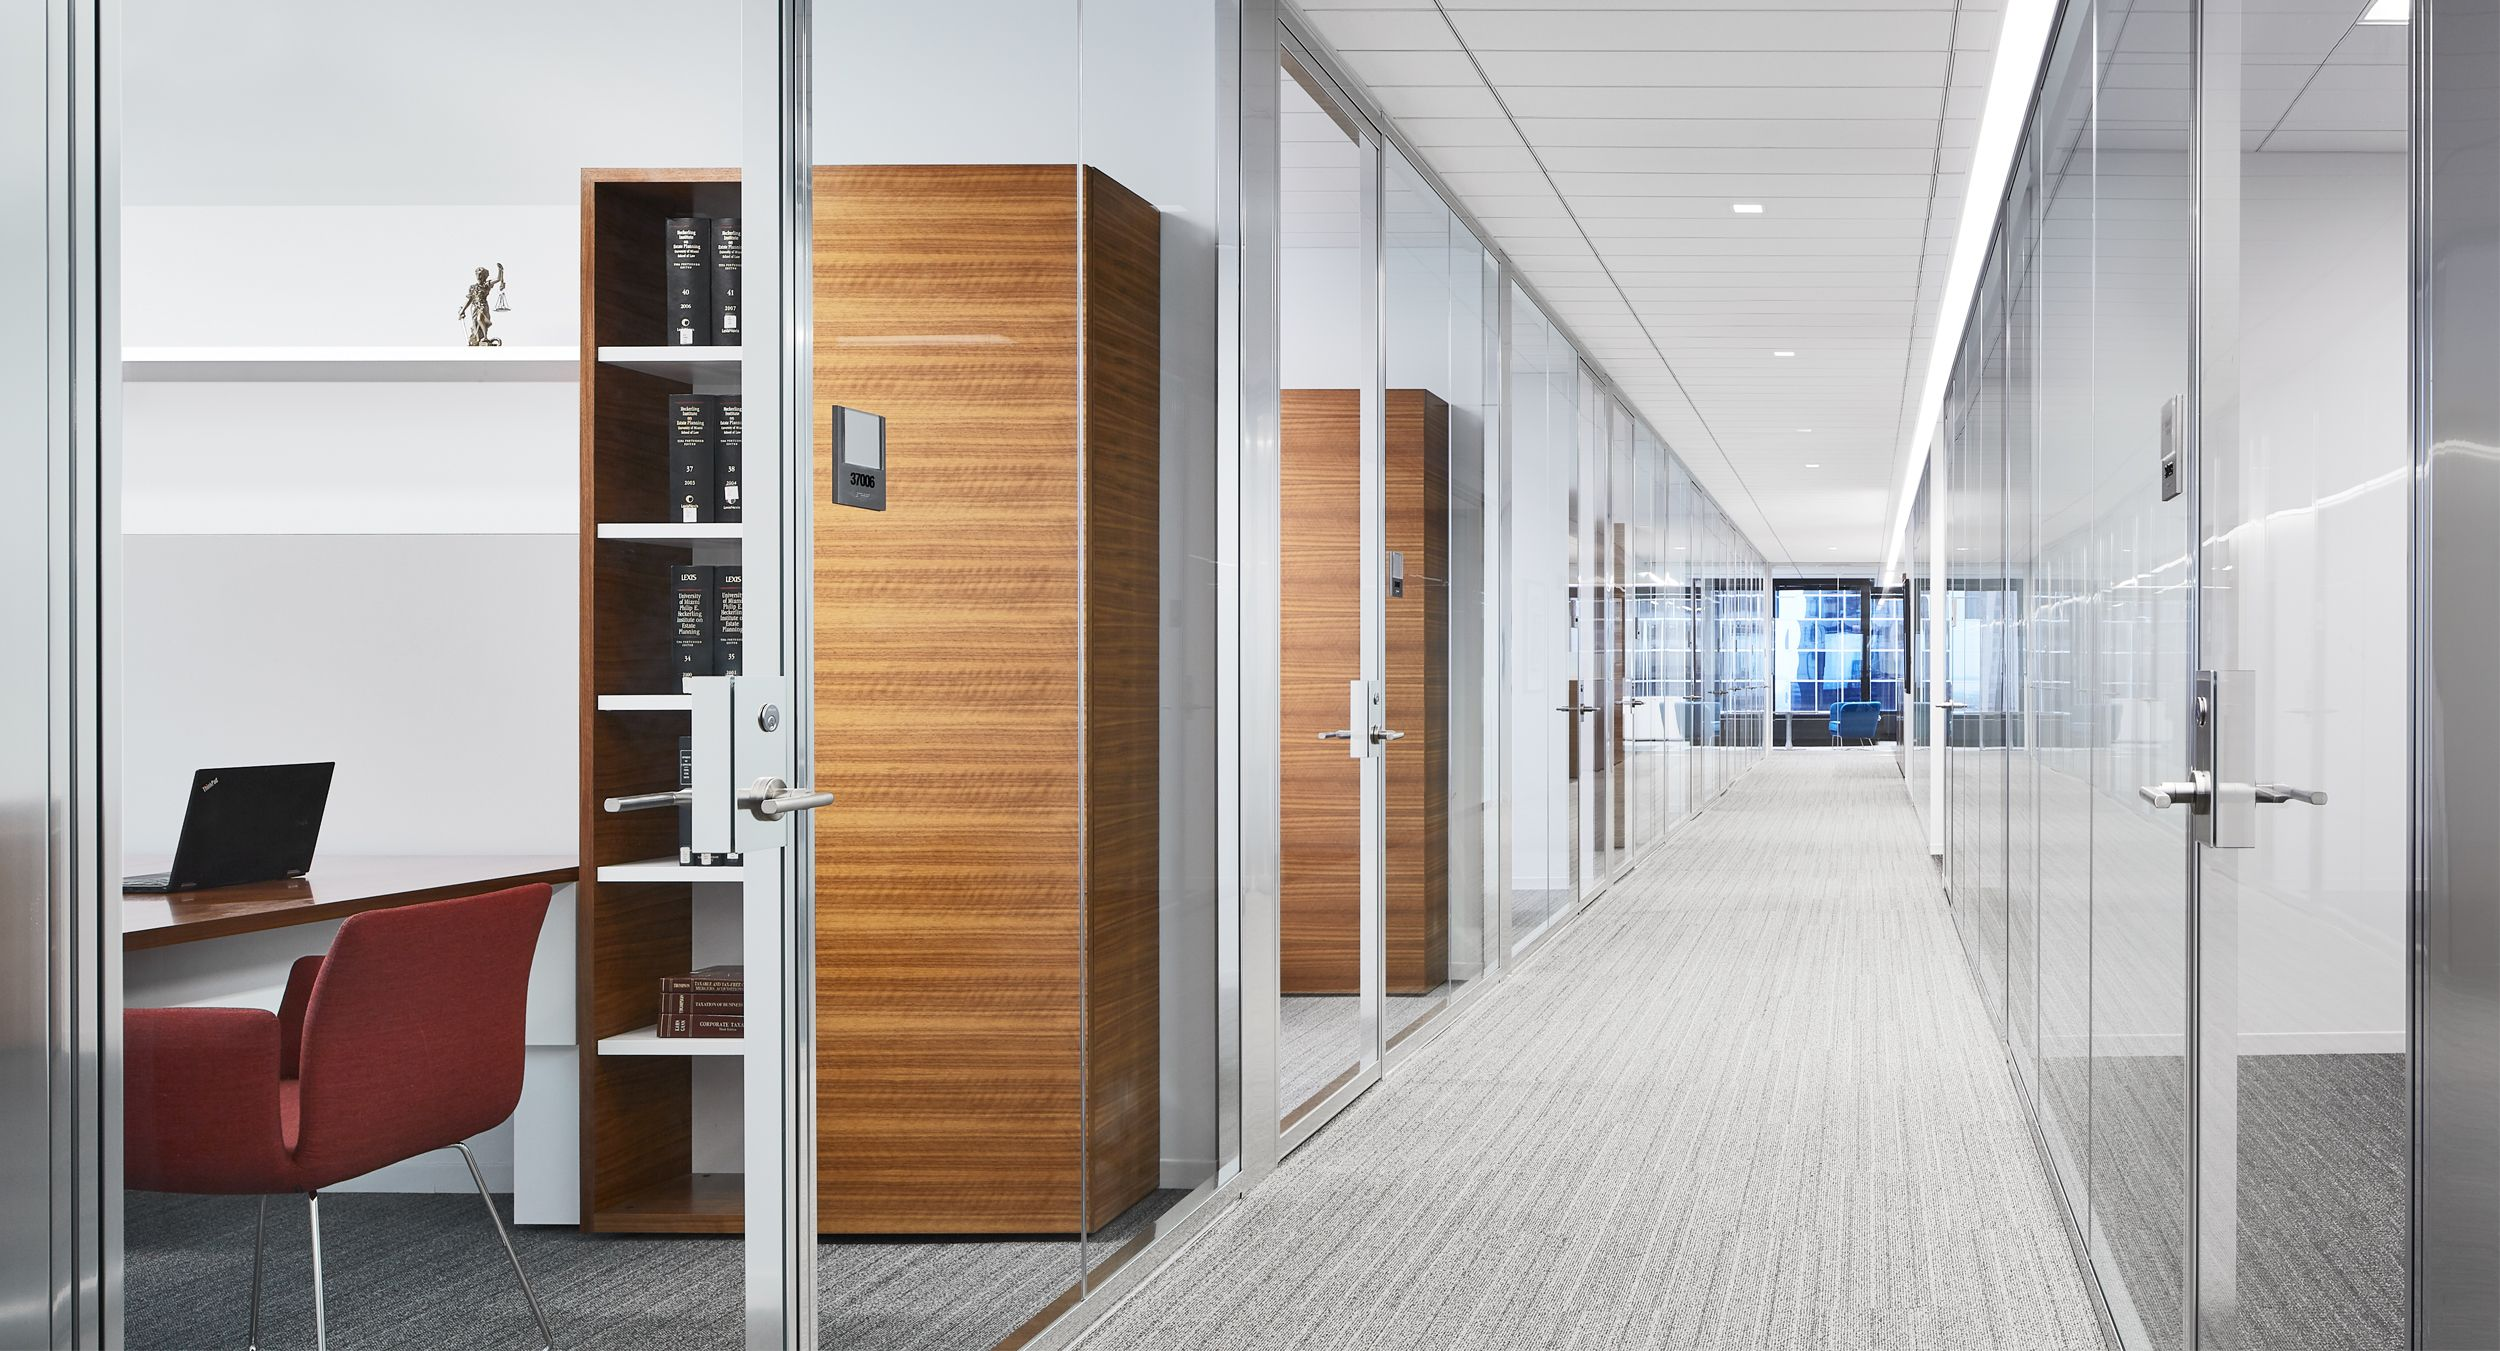 NEW MILLENNIA private offices feature grain-matched Quarter Cut Walnut and are designed to perfectly meet user needs.